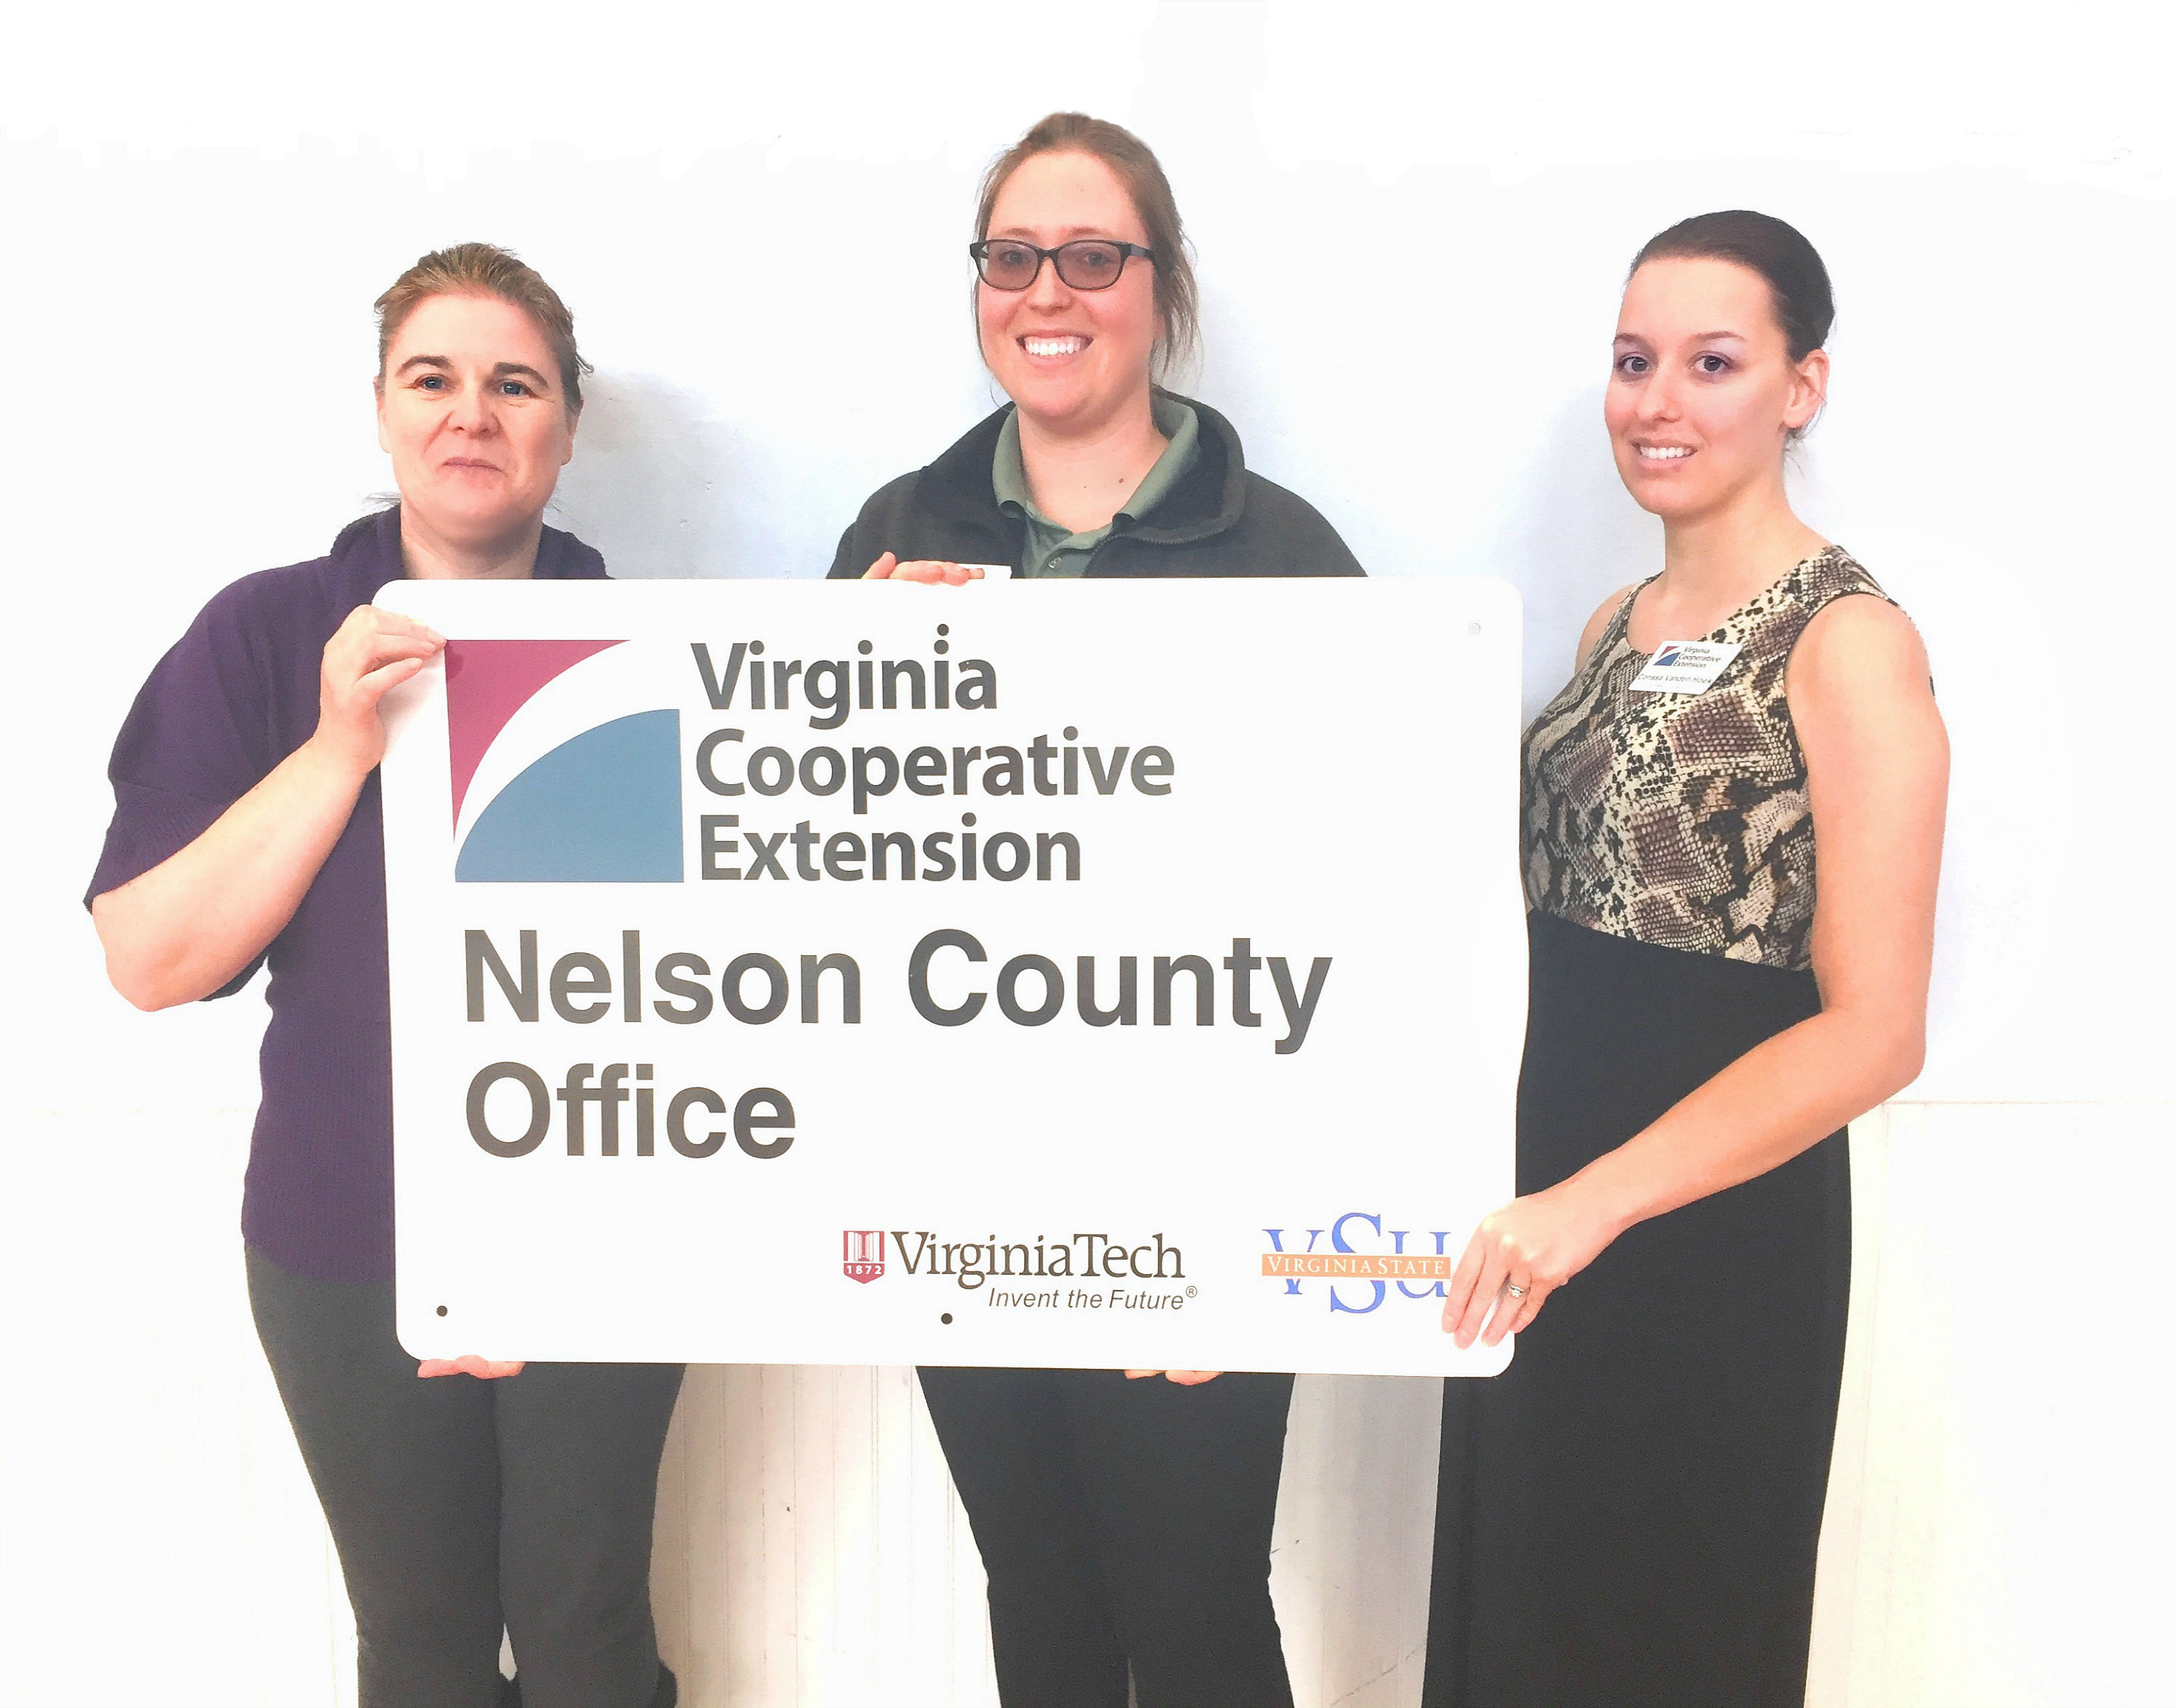 Nelson Office Staff